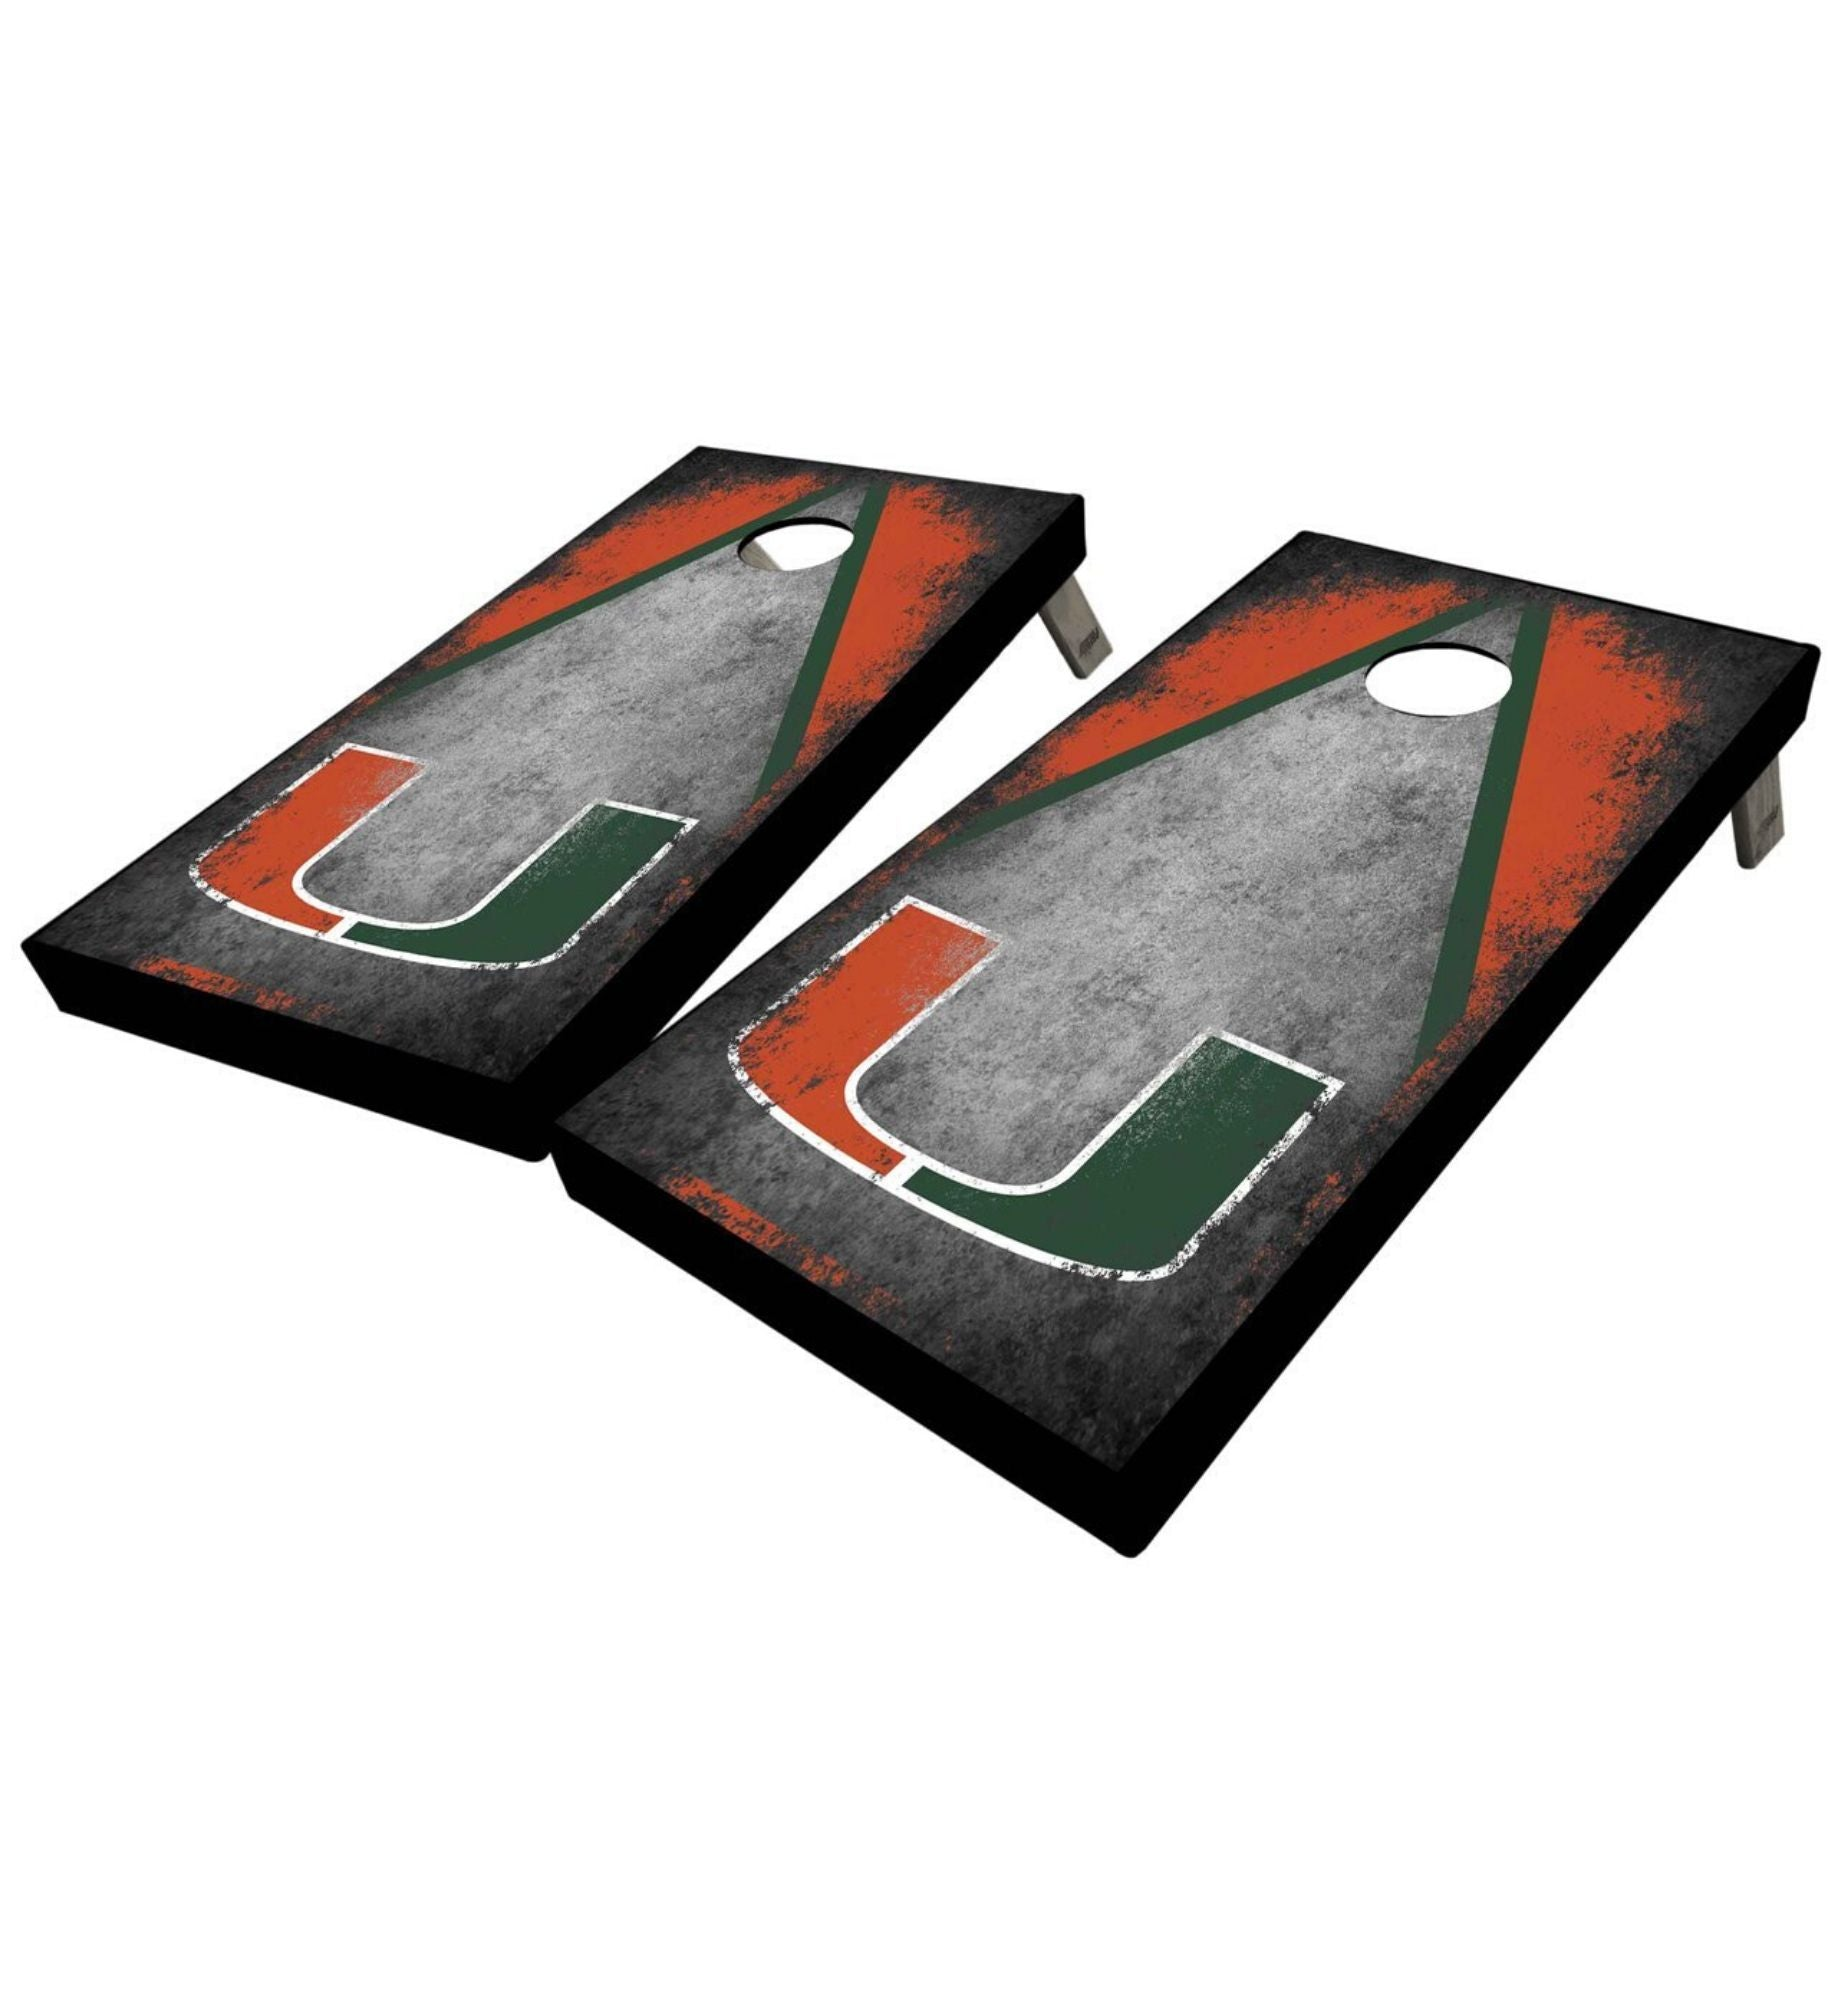 Regulation university of miami cornhole boards. Customizable premium quality cornhole set.